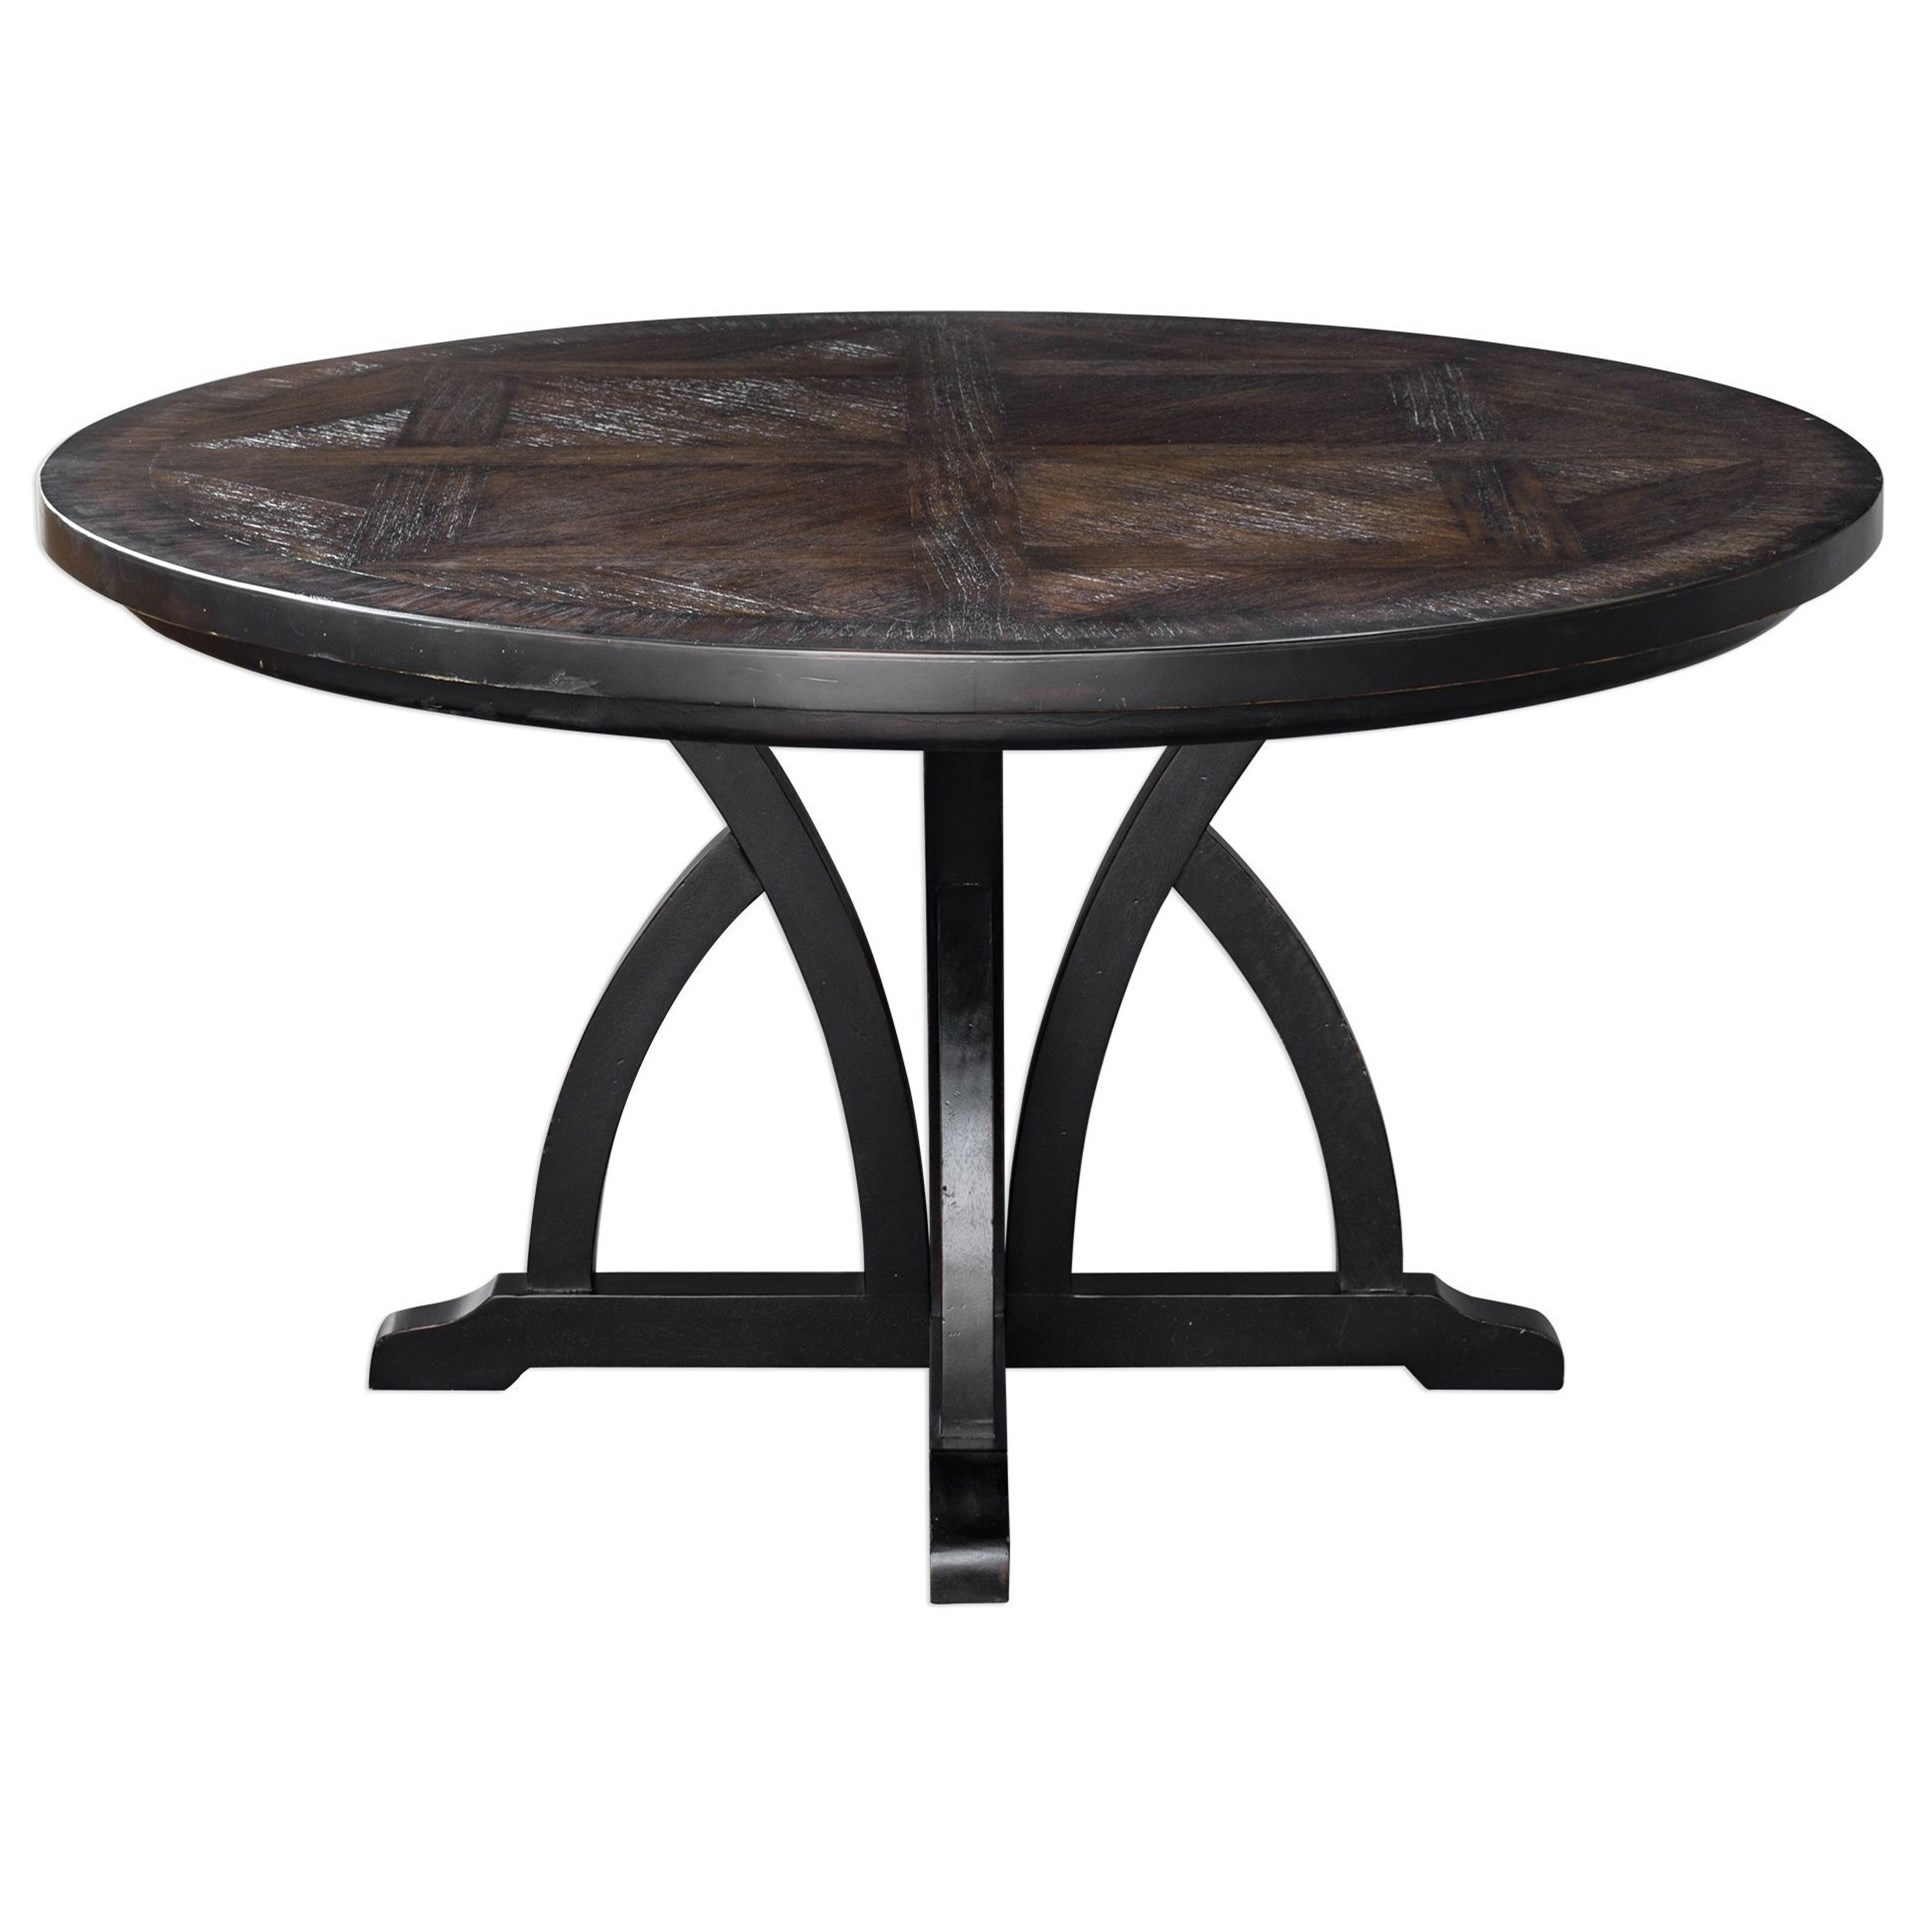 Accent Furniture Maiva Round Black Dining Table by Uttermost at Goffena Furniture & Mattress Center